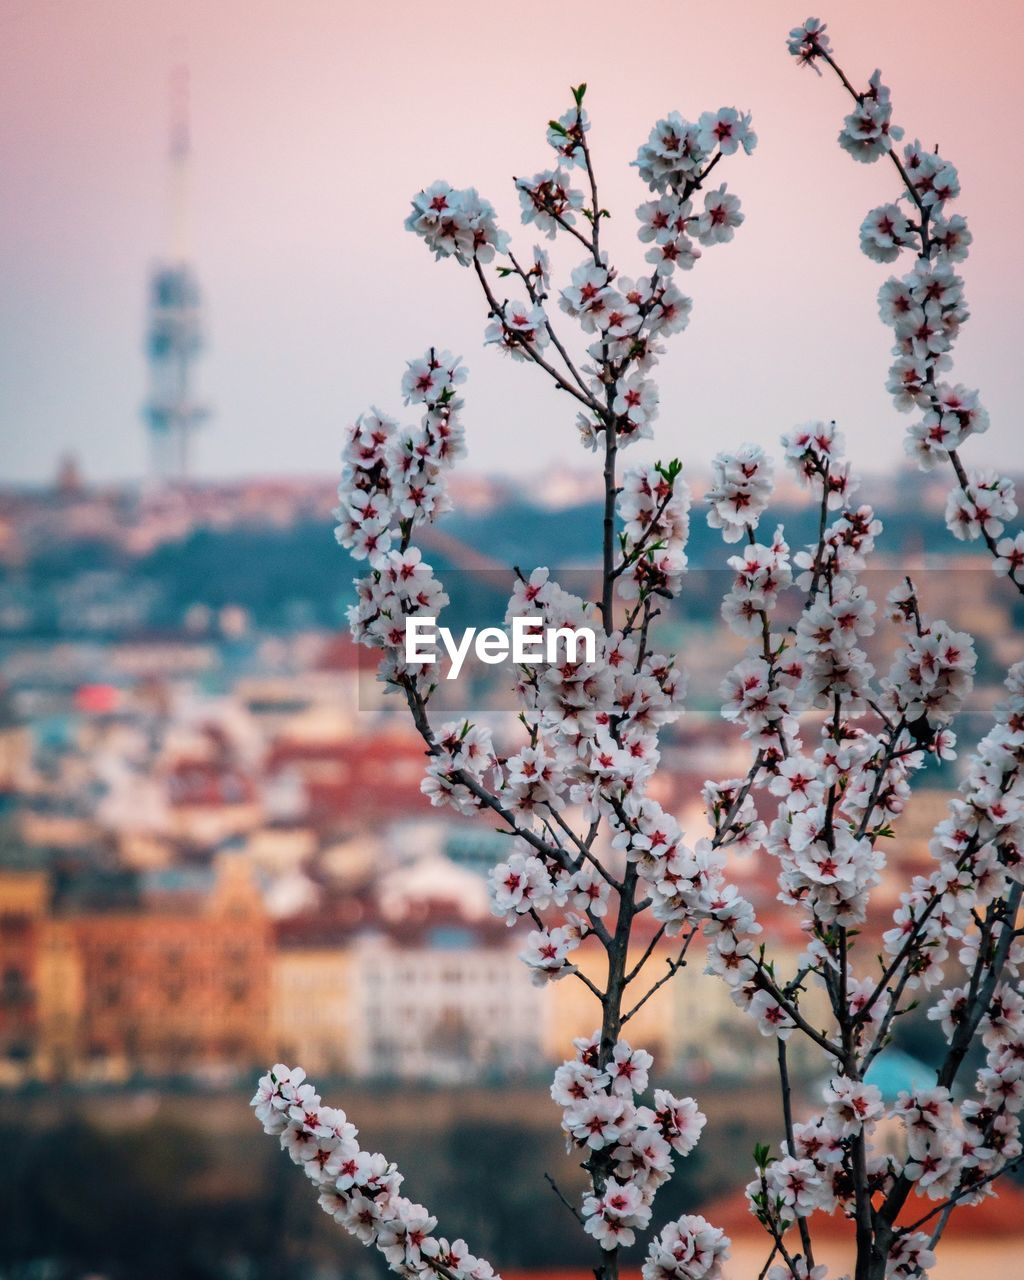 flowering plant, flower, fragility, plant, freshness, growth, vulnerability, beauty in nature, building exterior, architecture, built structure, focus on foreground, blossom, tree, nature, springtime, no people, close-up, day, branch, pink color, outdoors, cherry blossom, cherry tree, flower head